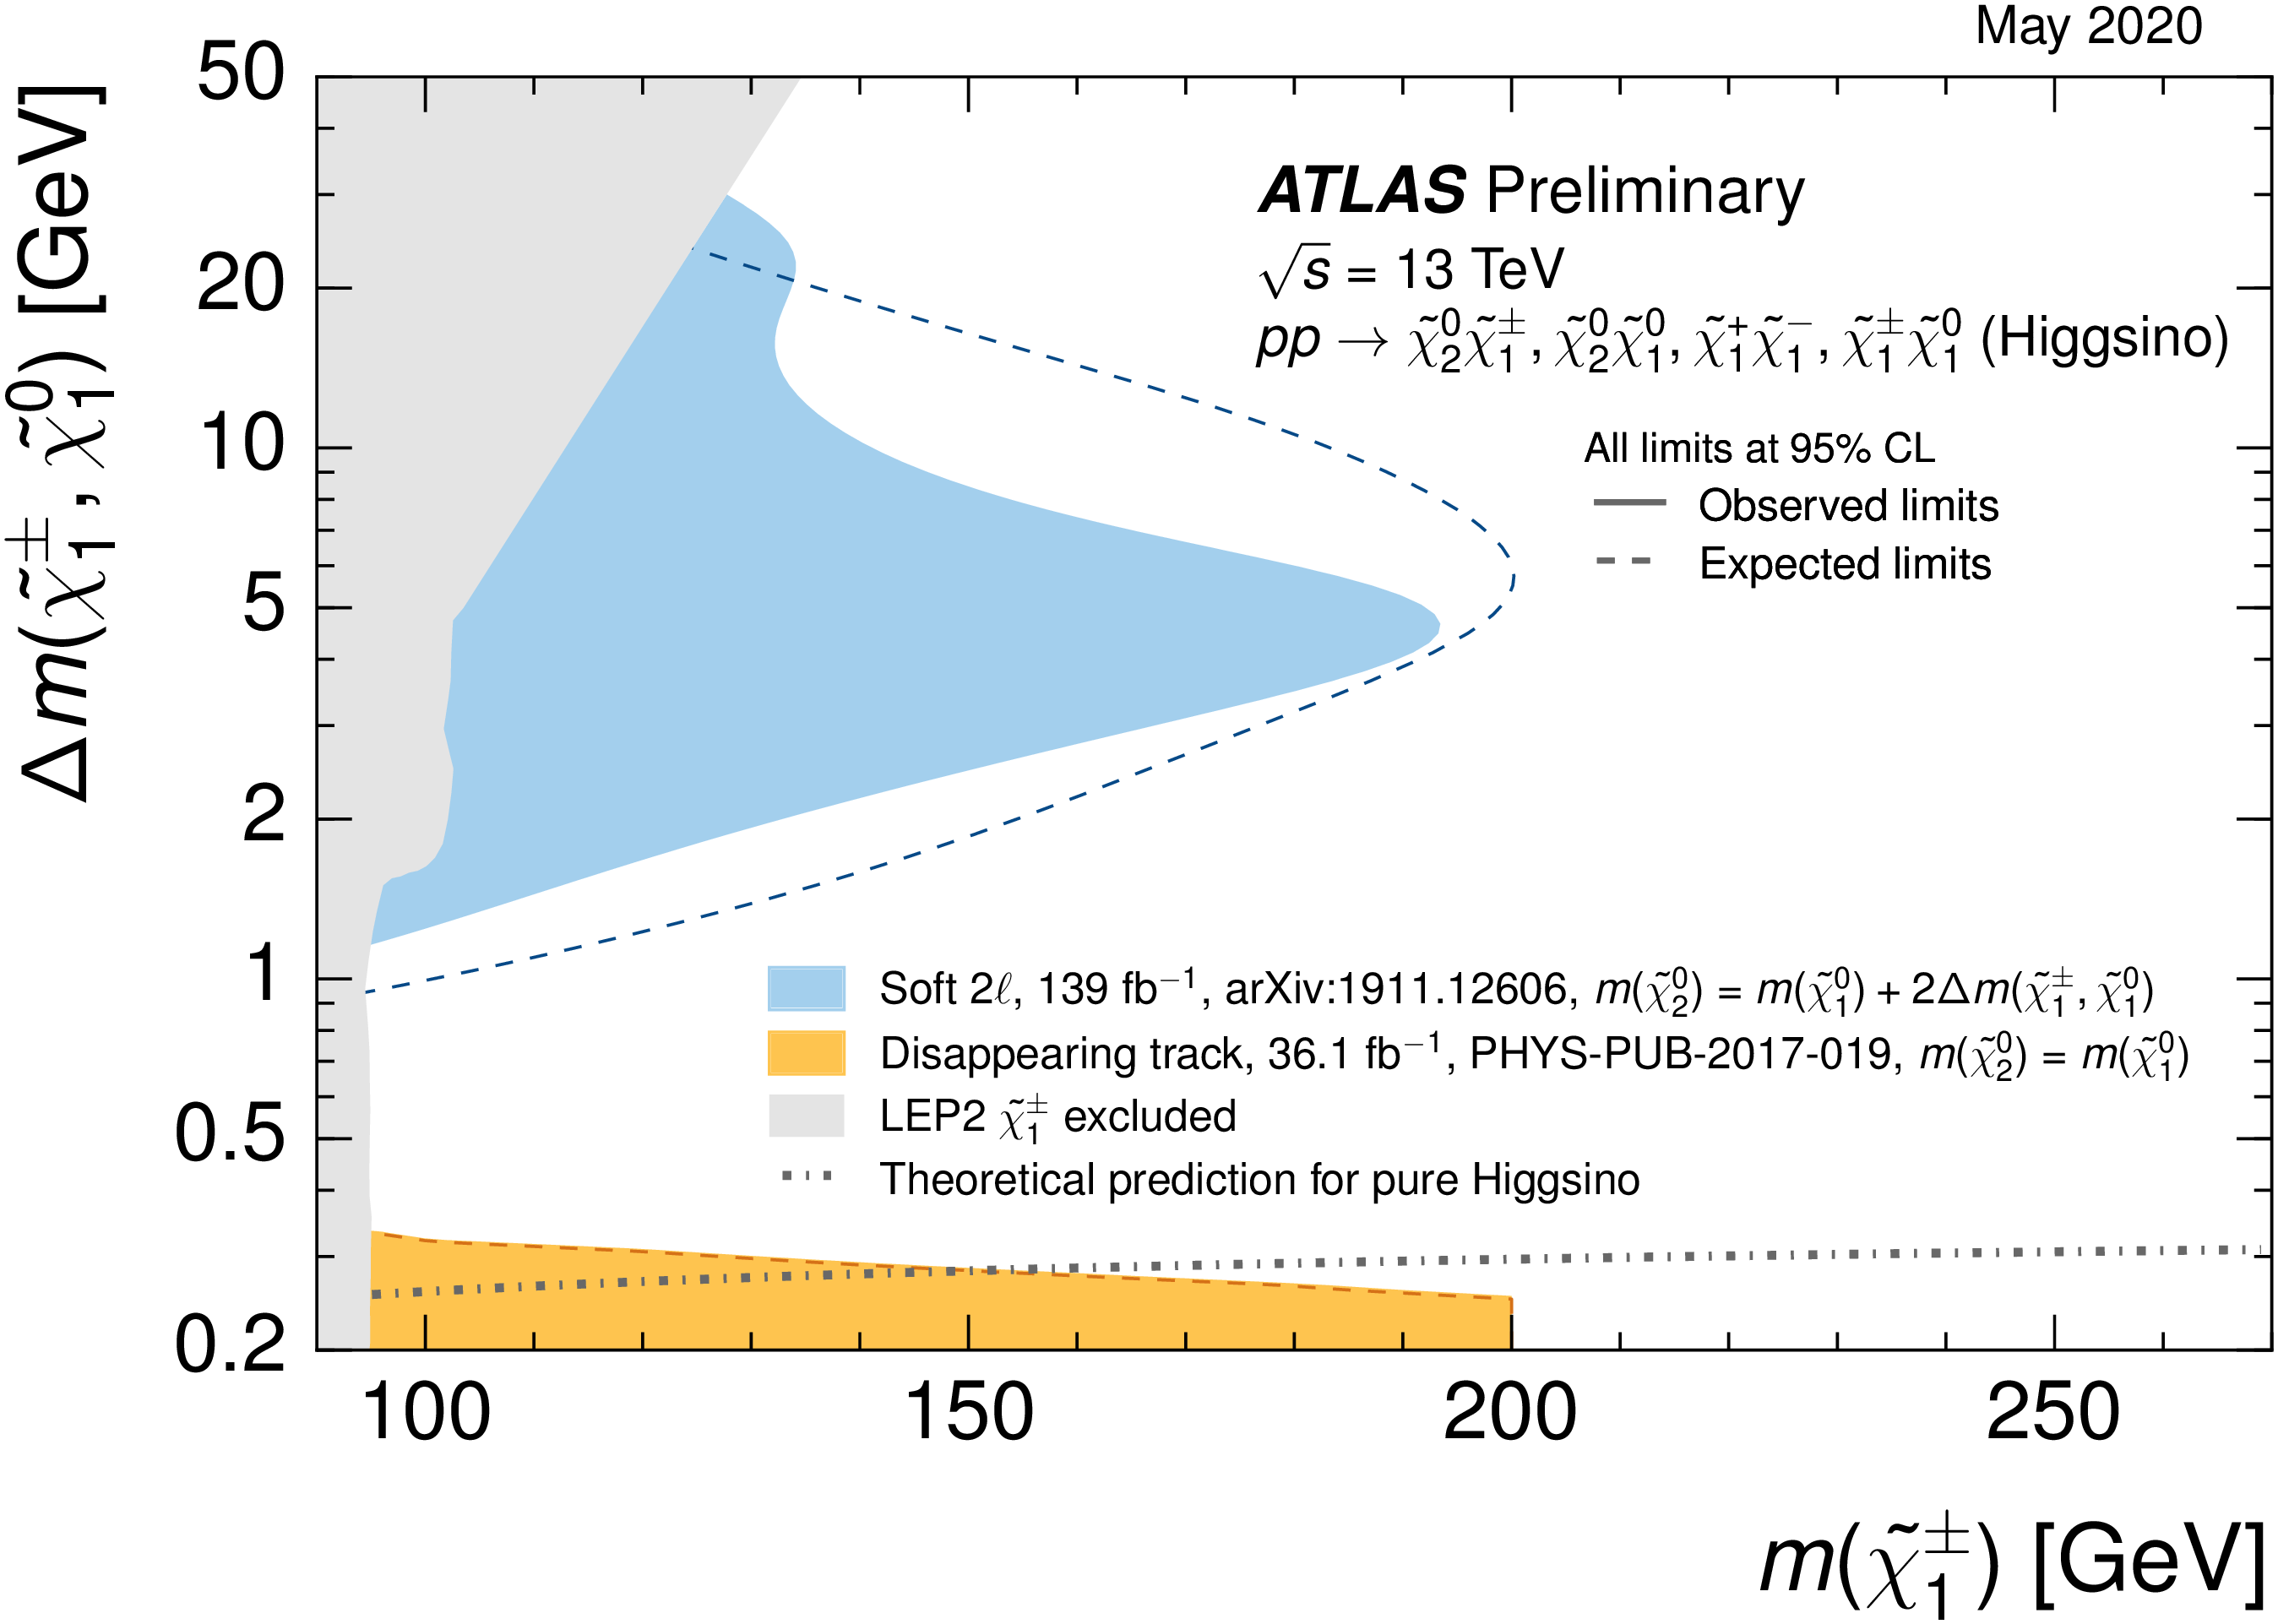 https://atlas.web.cern.ch/Atlas/GROUPS/PHYSICS/CombinedSummaryPlots/SUSY/ATLAS_SUSY_EWSummary_higgsino/ATLAS_SUSY_EWSummary_higgsino.png